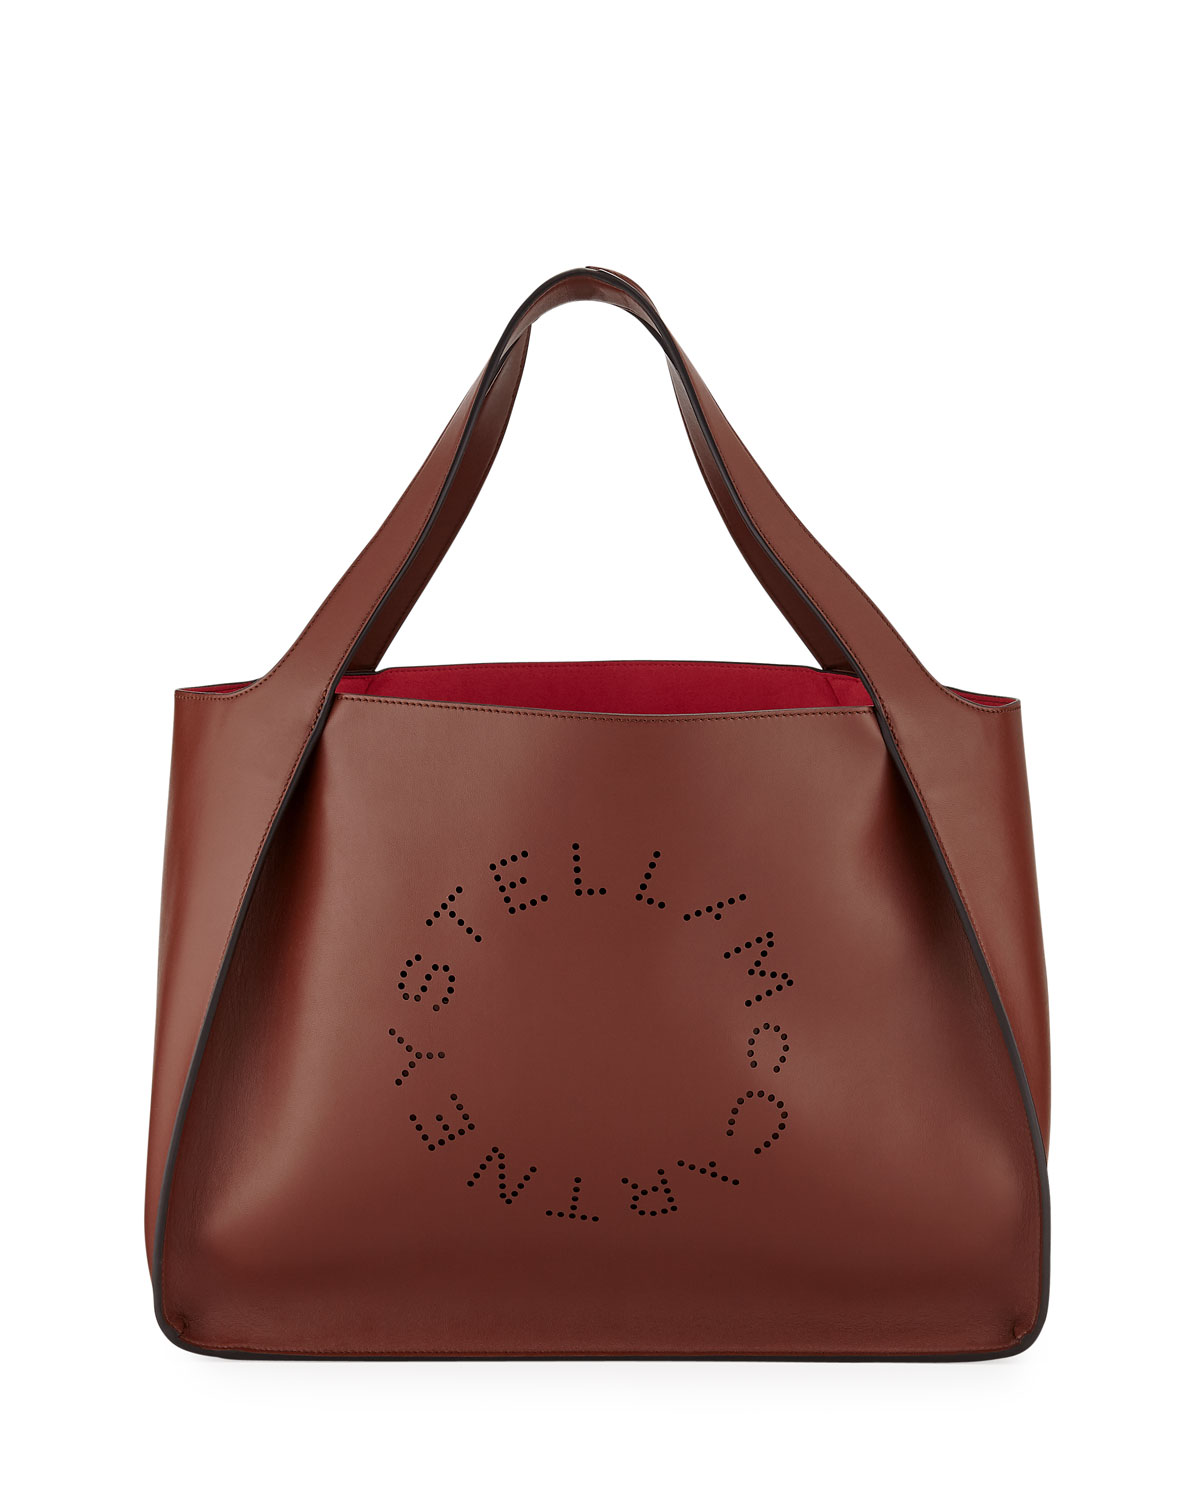 Alter East West Perforated Tote Bag